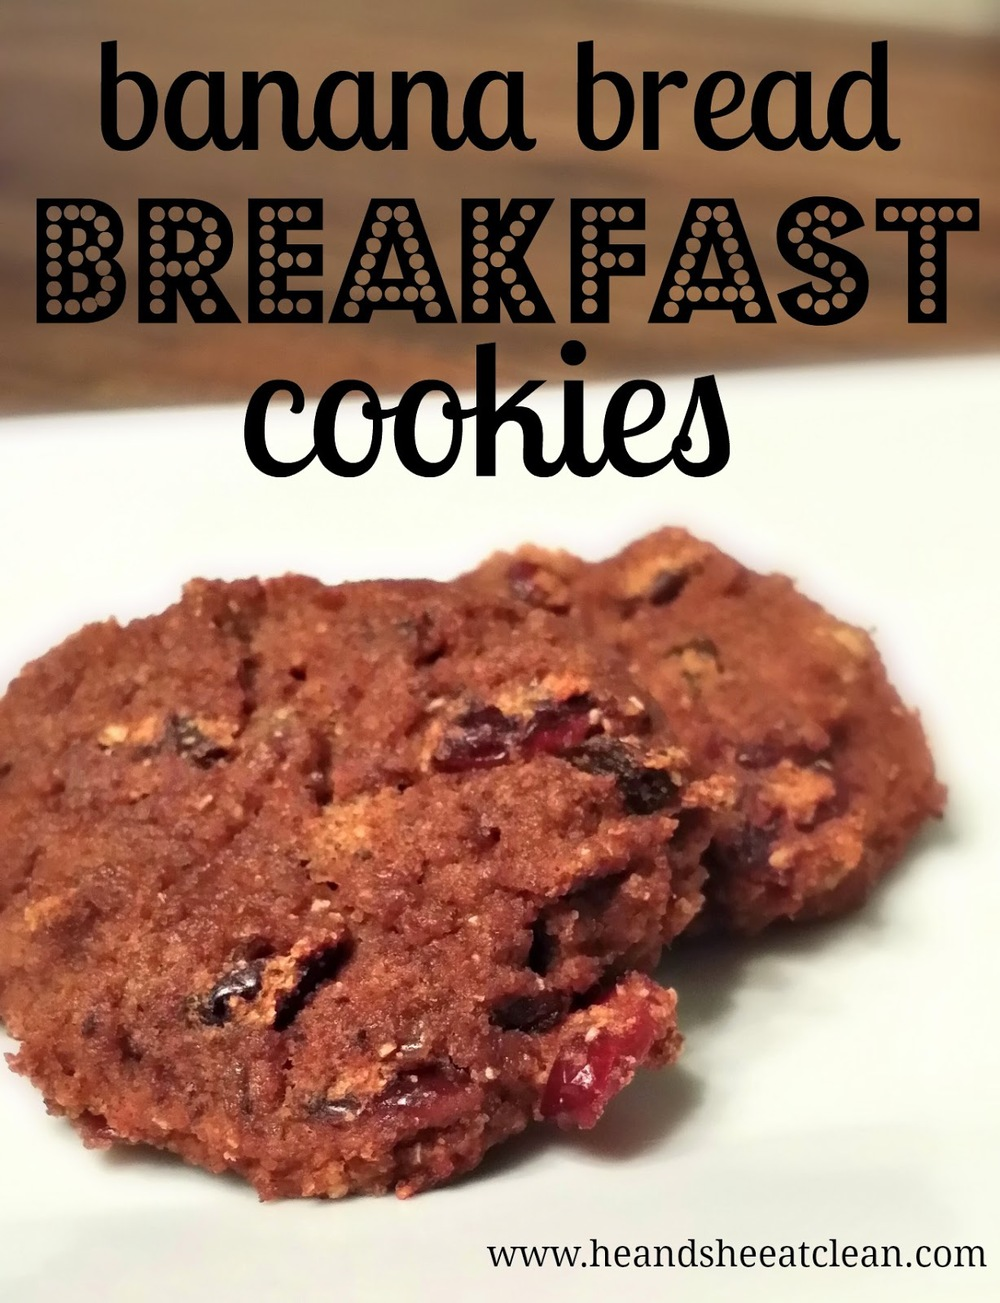 banana-bread-breakfast-baked-cookies-recipe-cranberries-raisins-dates-gluten-free-paleo-he-she-eat-clean-2.jpg